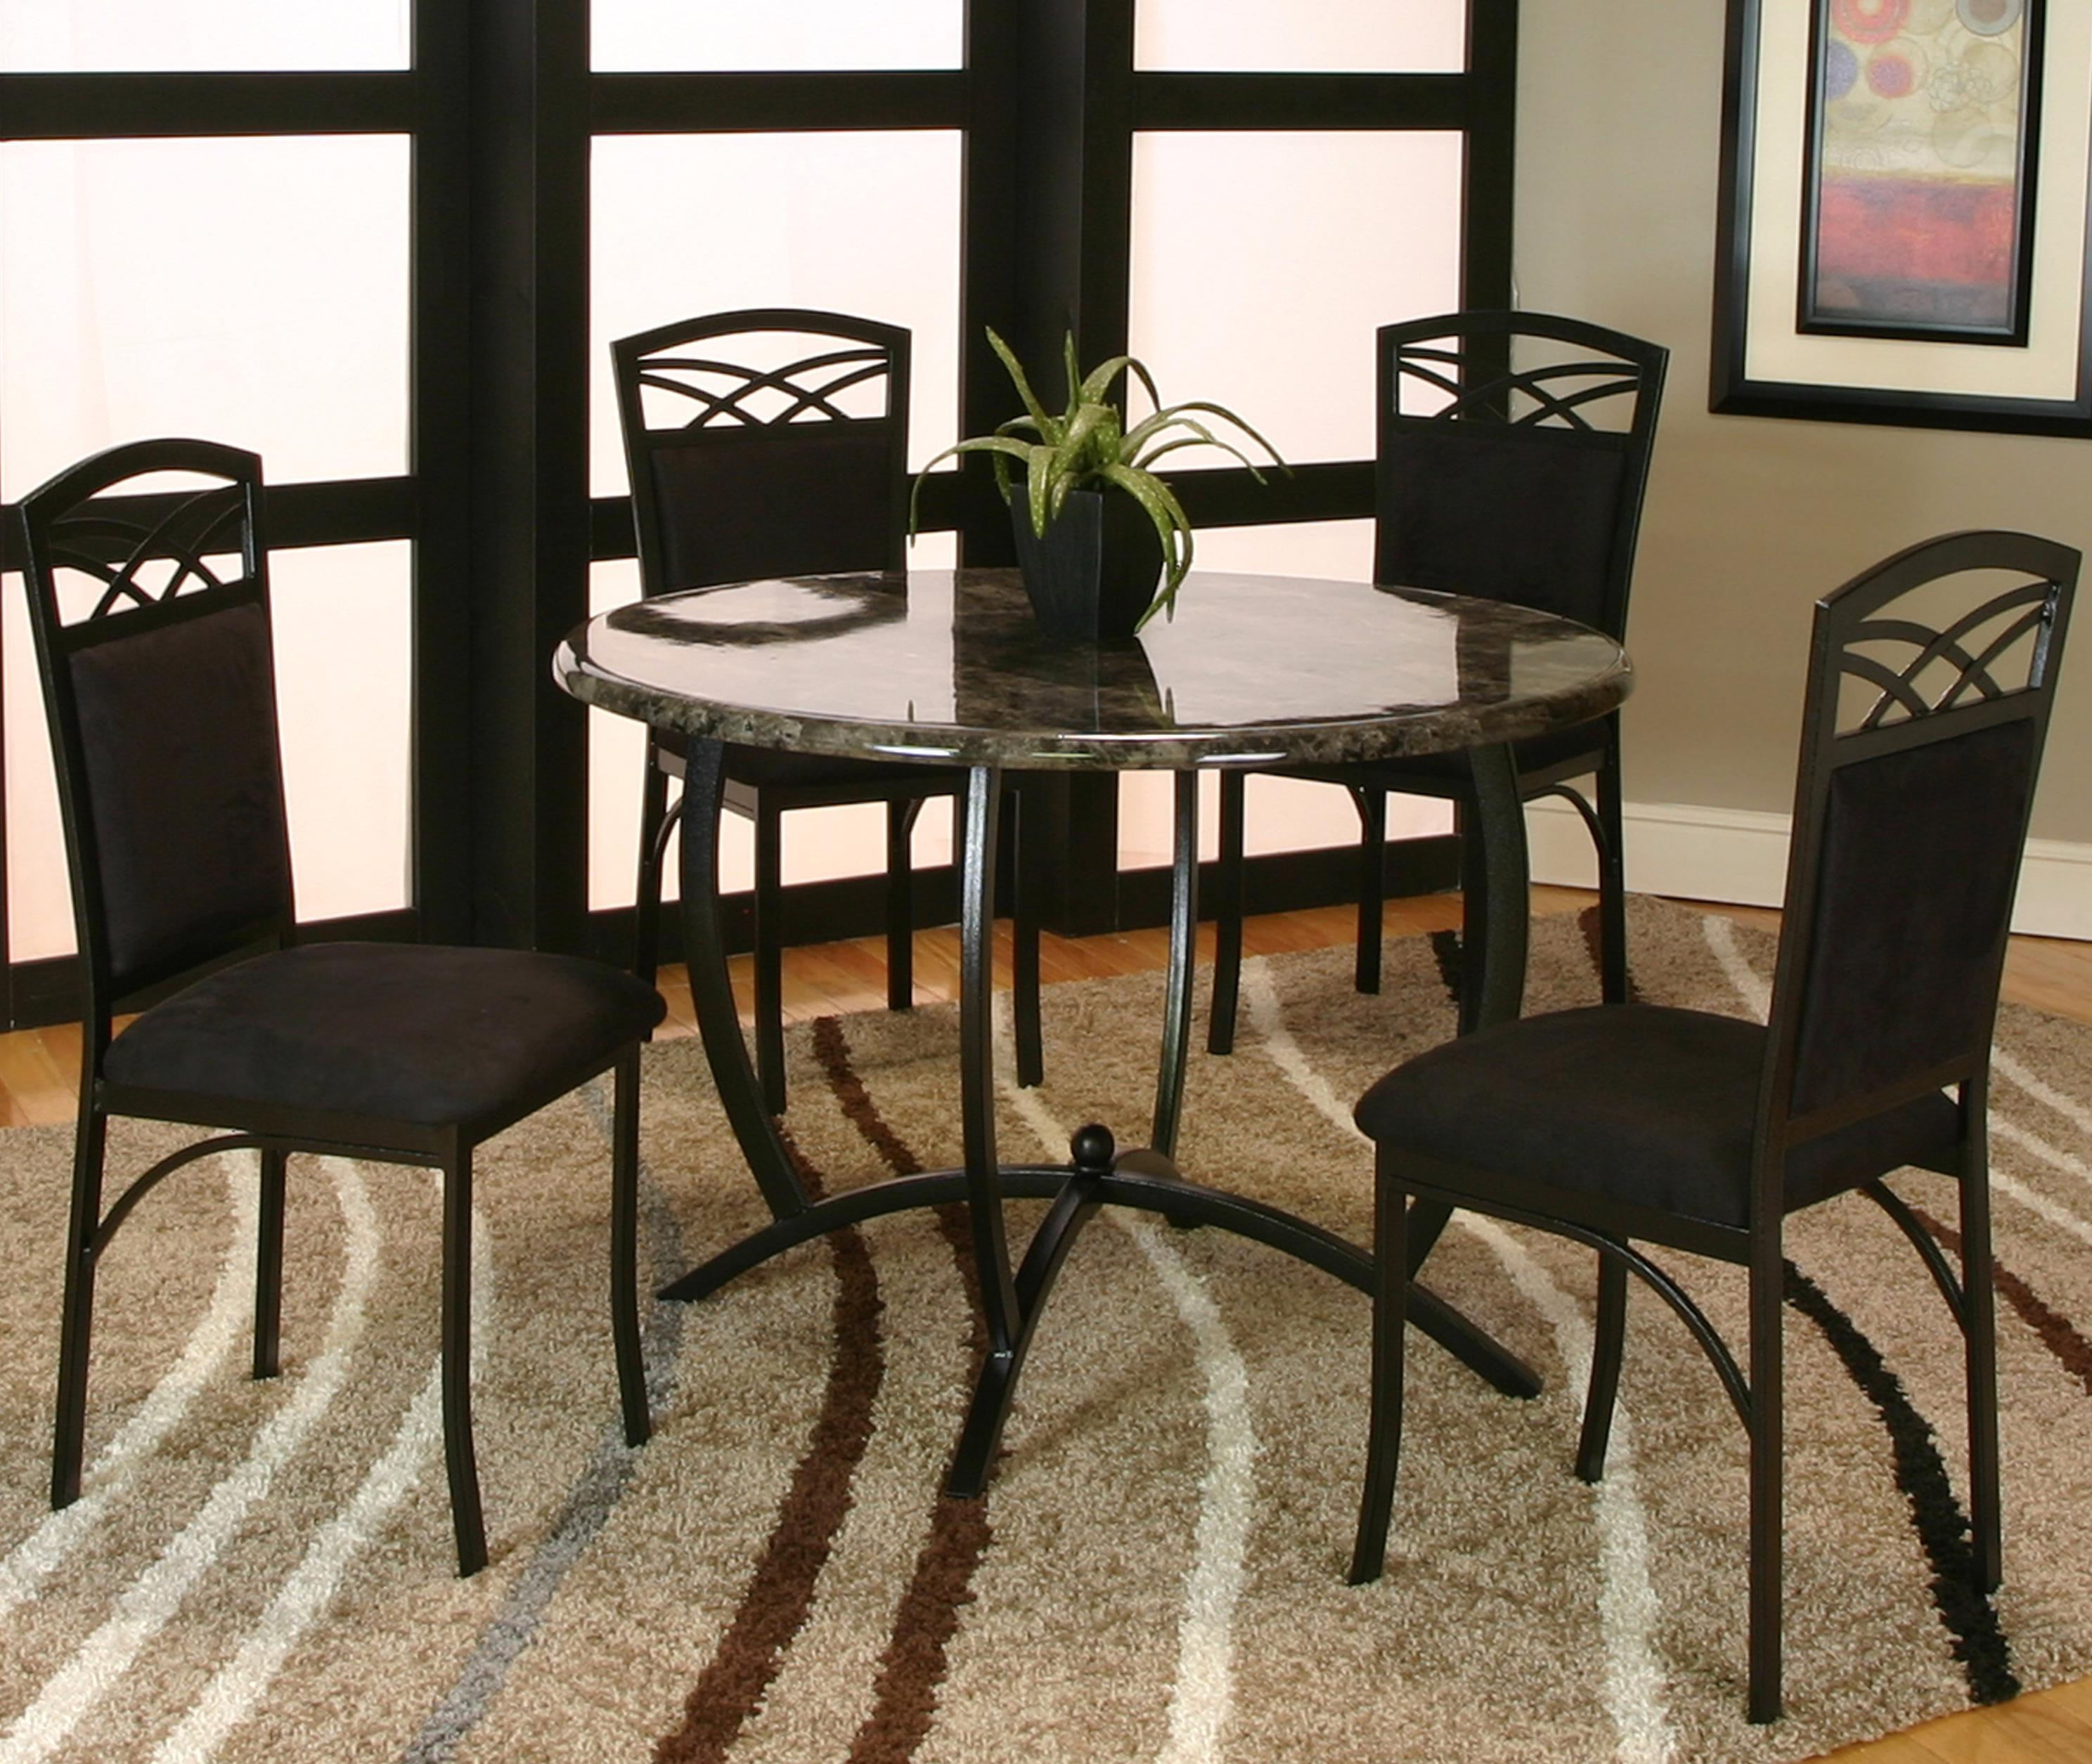 Dusk Dining Room Set Cramco: Cramco, Inc Electra 5 Piece Table And Chair Set